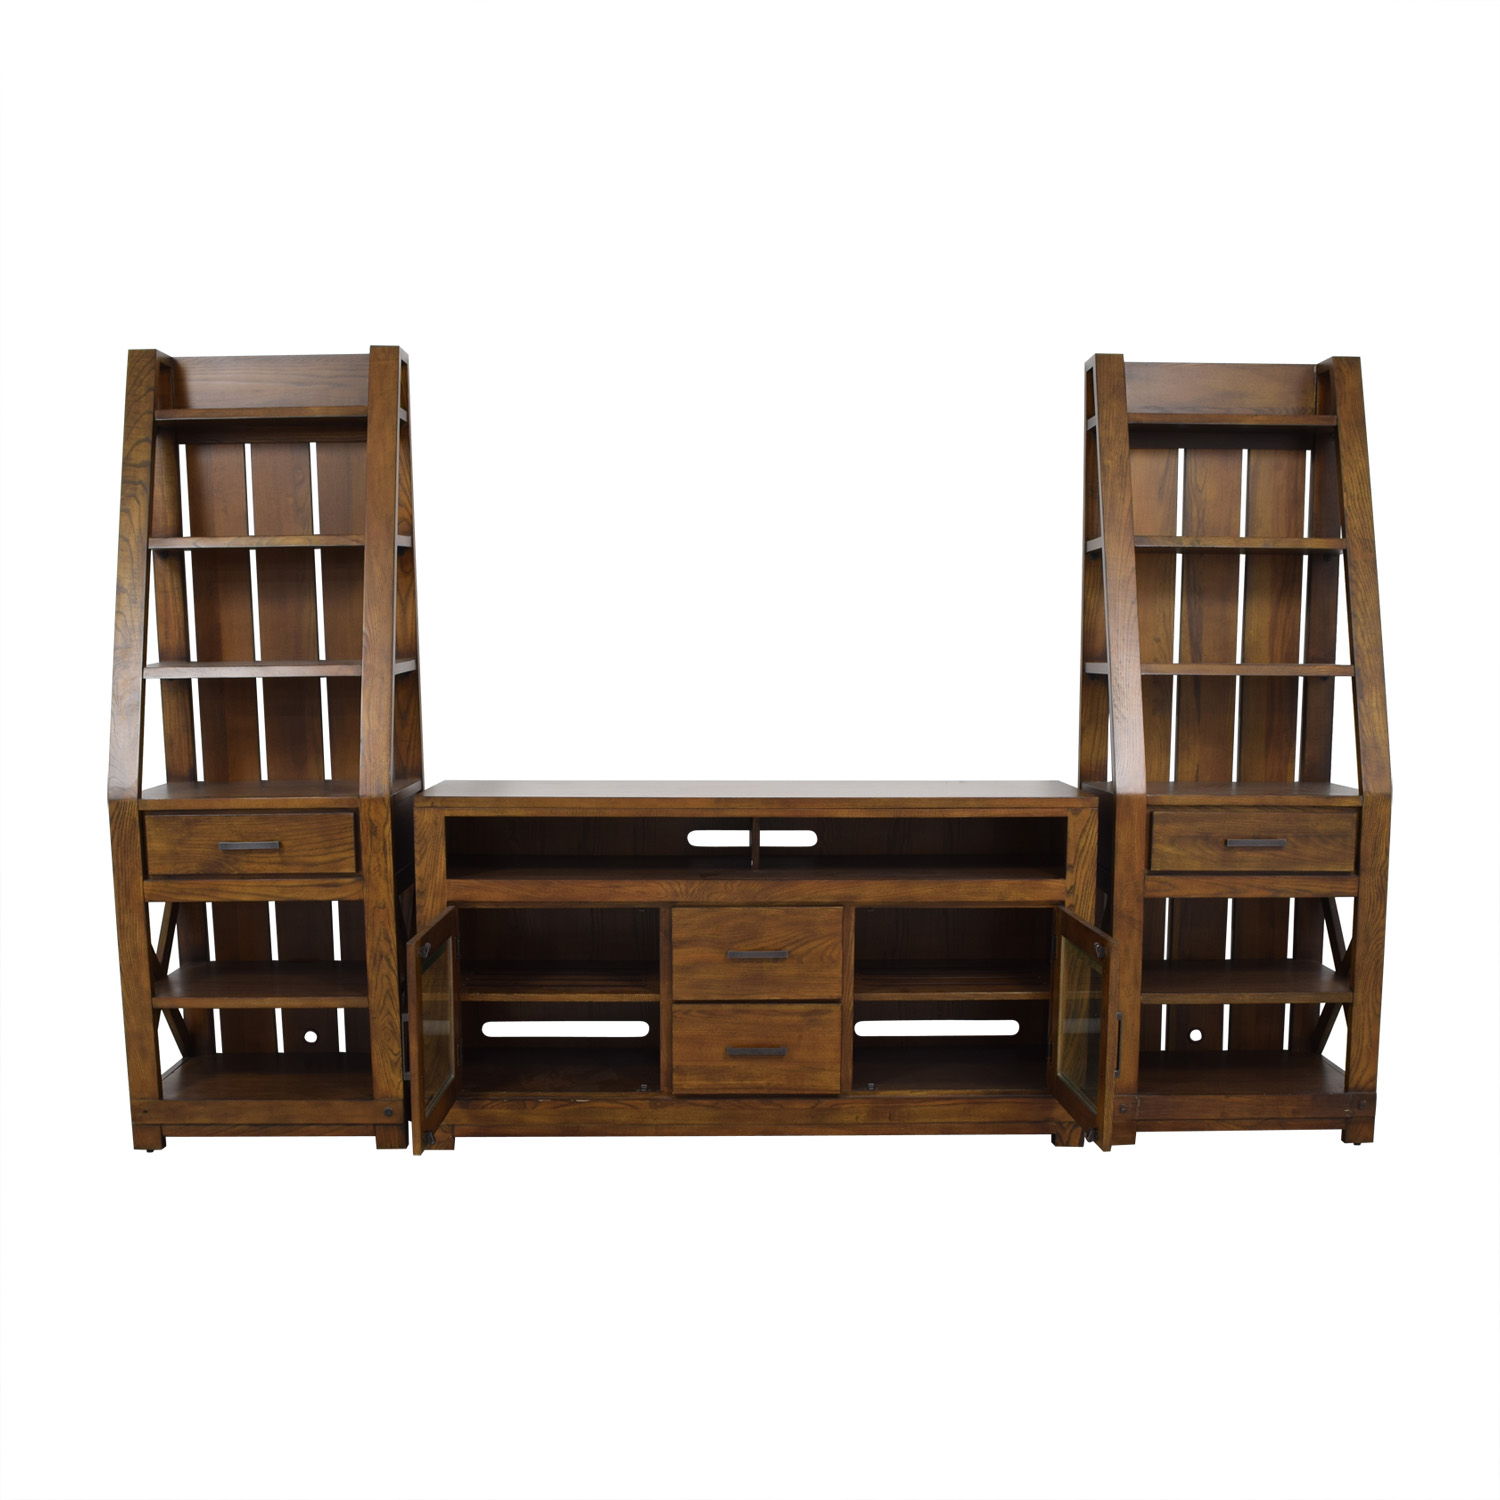 Raymour and Flanigan Raymour and Flanigan Wood Wall Unit with Shelves dimensions